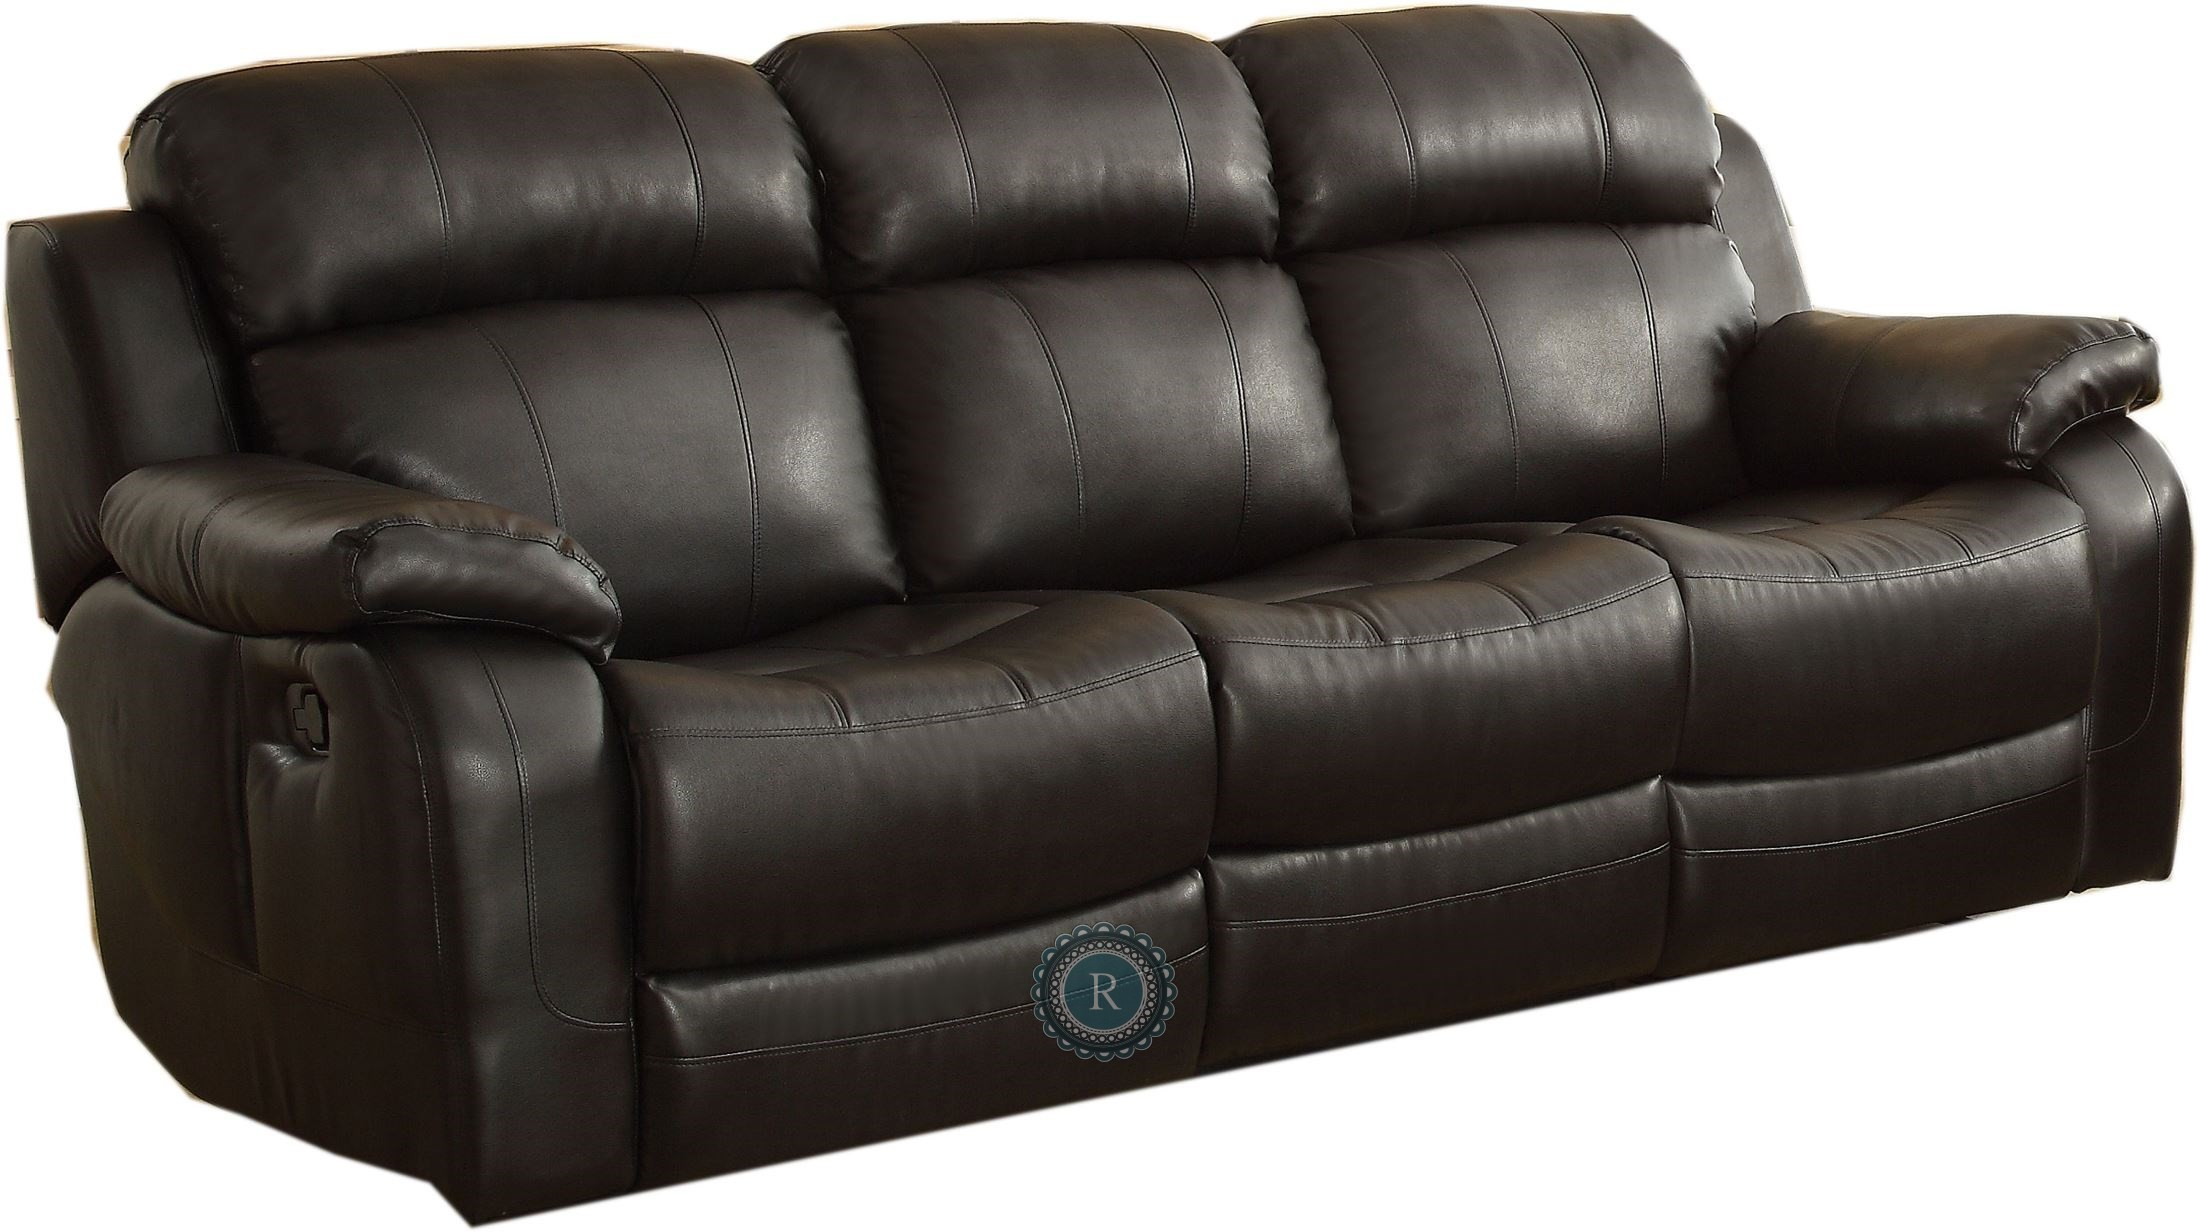 Marille black double reclining sofa with center drop down cup holders from homelegance 9724blk Loveseat with cup holders